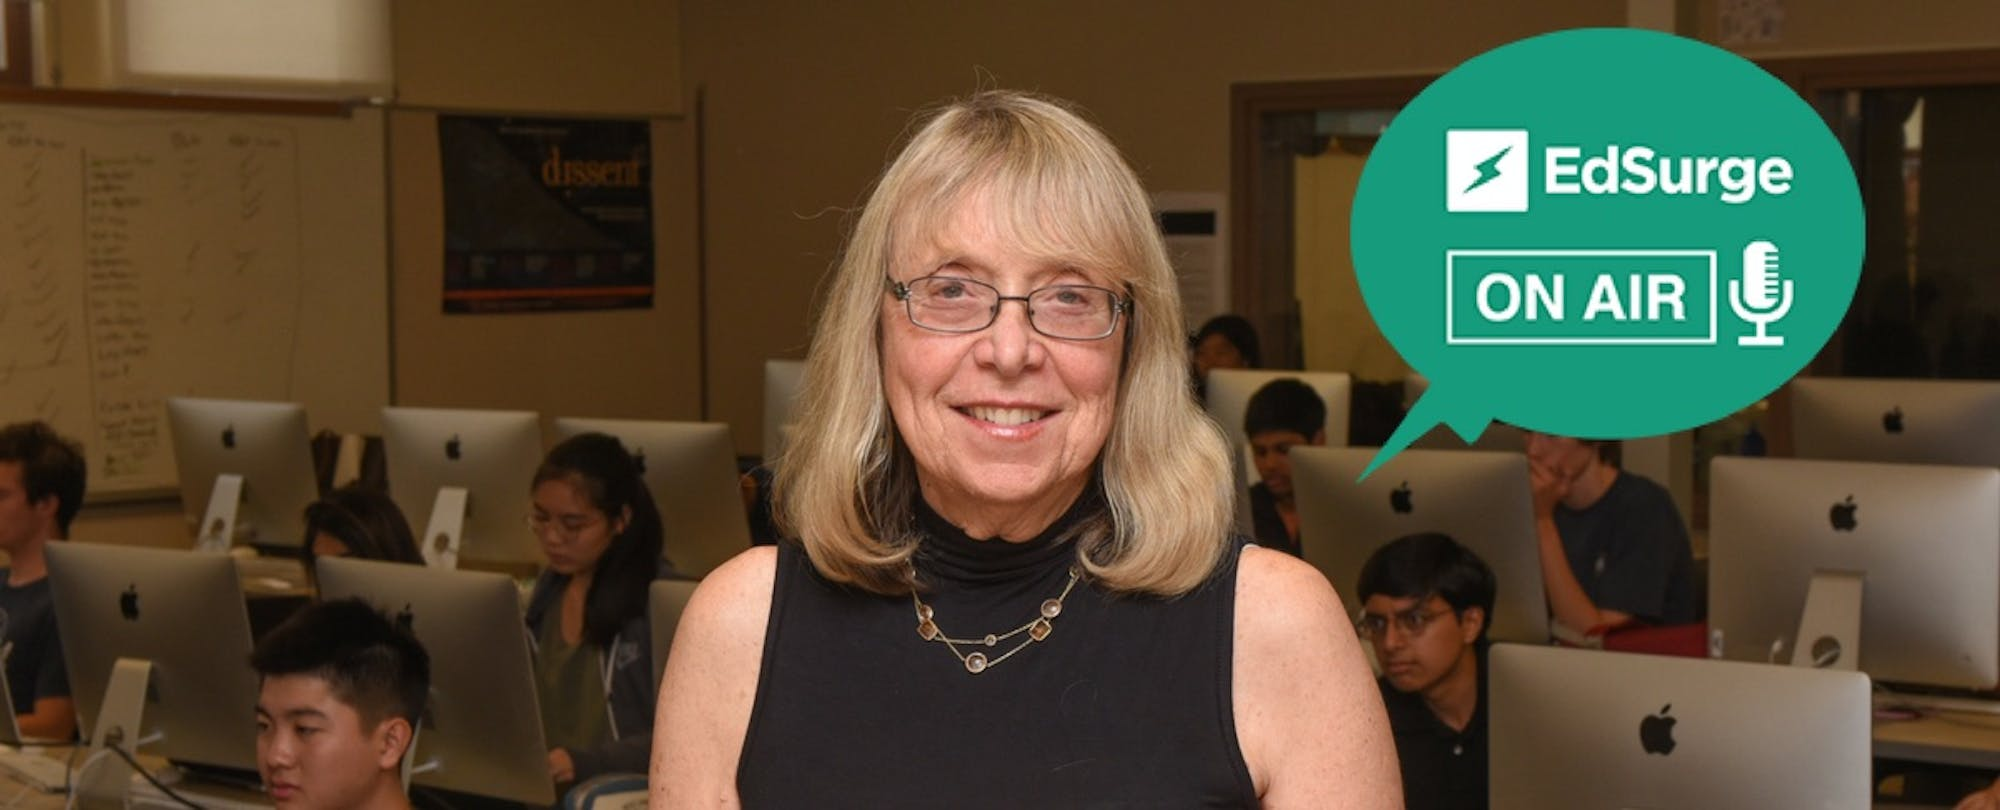 Facebook and Fake News: Esther Wojcicki On Teaching Digital Journalism in High School